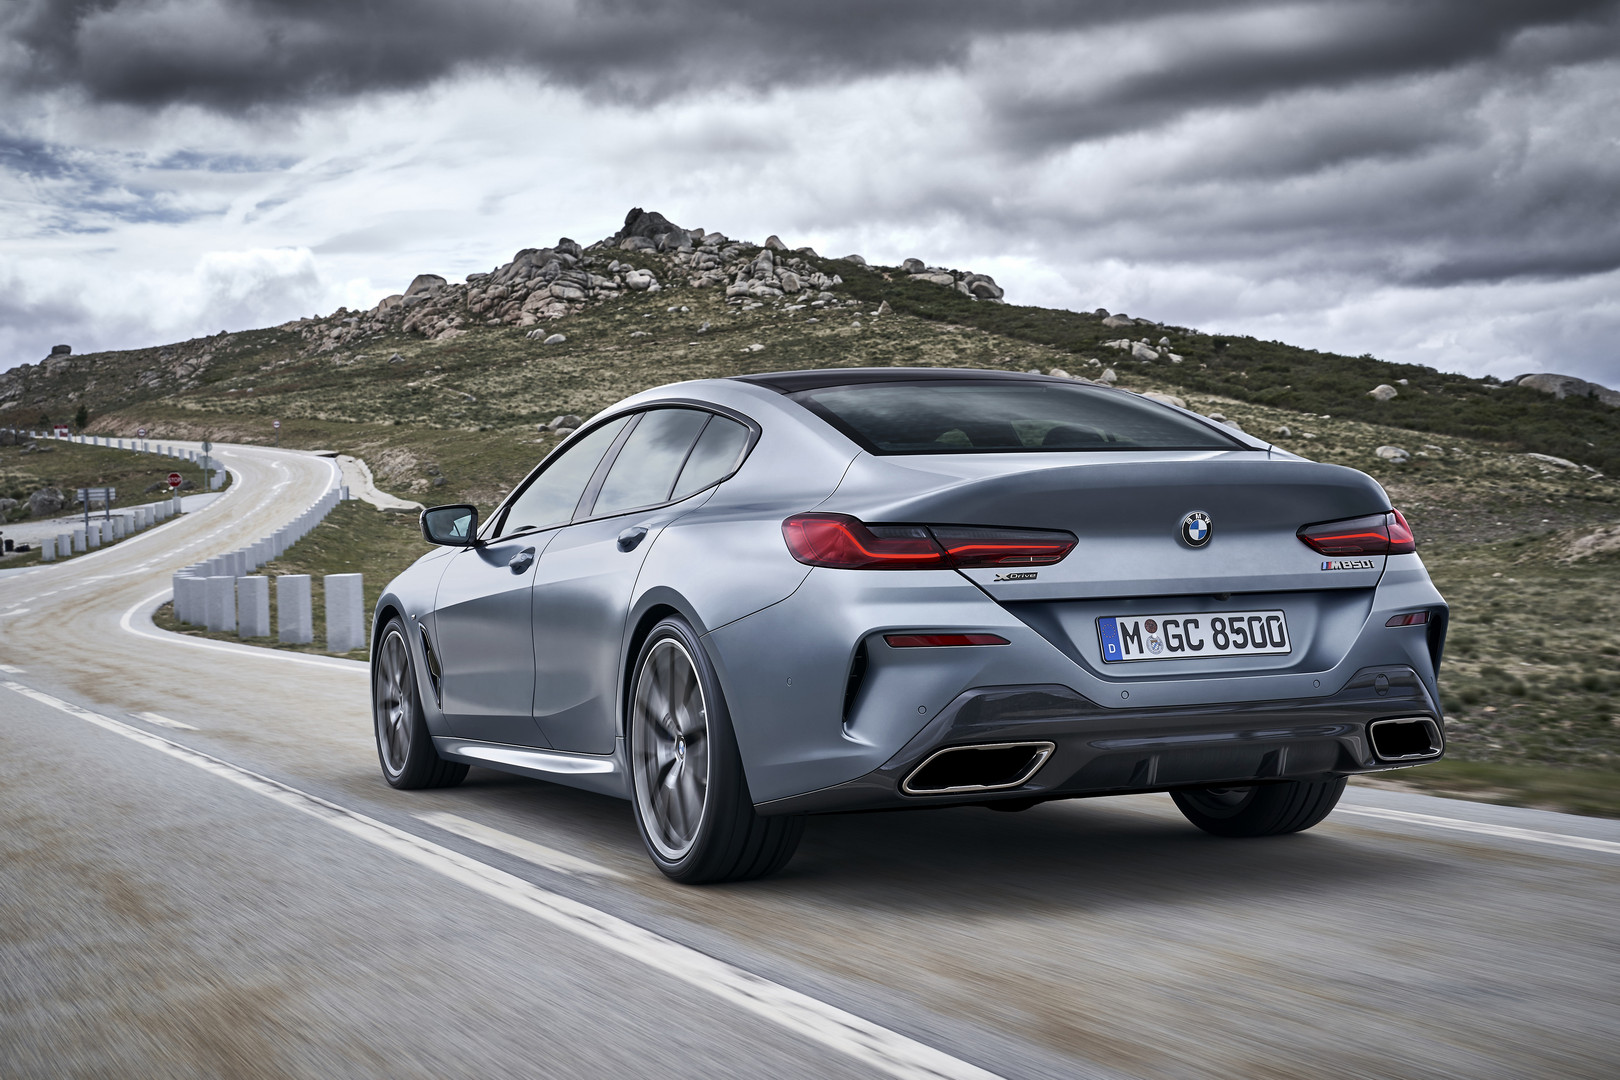 BMW 8 Series Gran Coupe Rear View